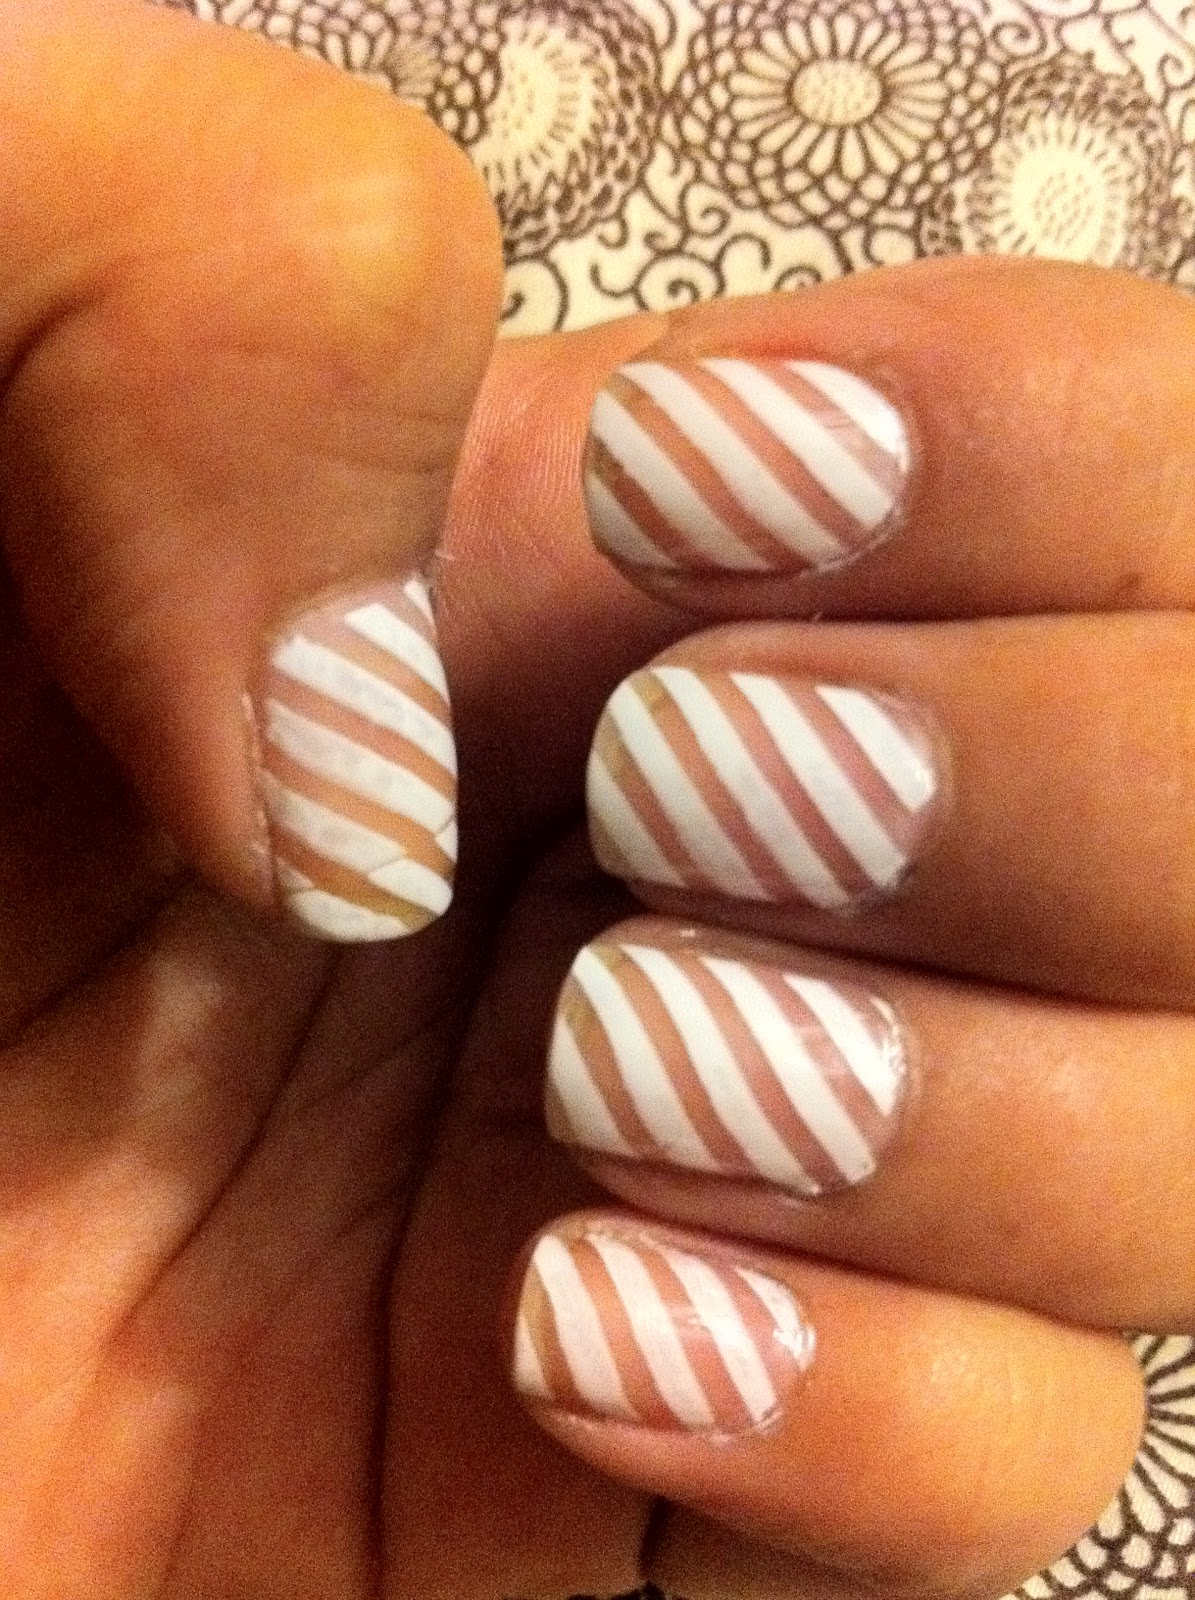 My+Photo 40 Stylish manicure Striped nails art striped nails striped manicure new trend in nail art nail art manicure with stripes manicure with strip decoration of nails daily manicure